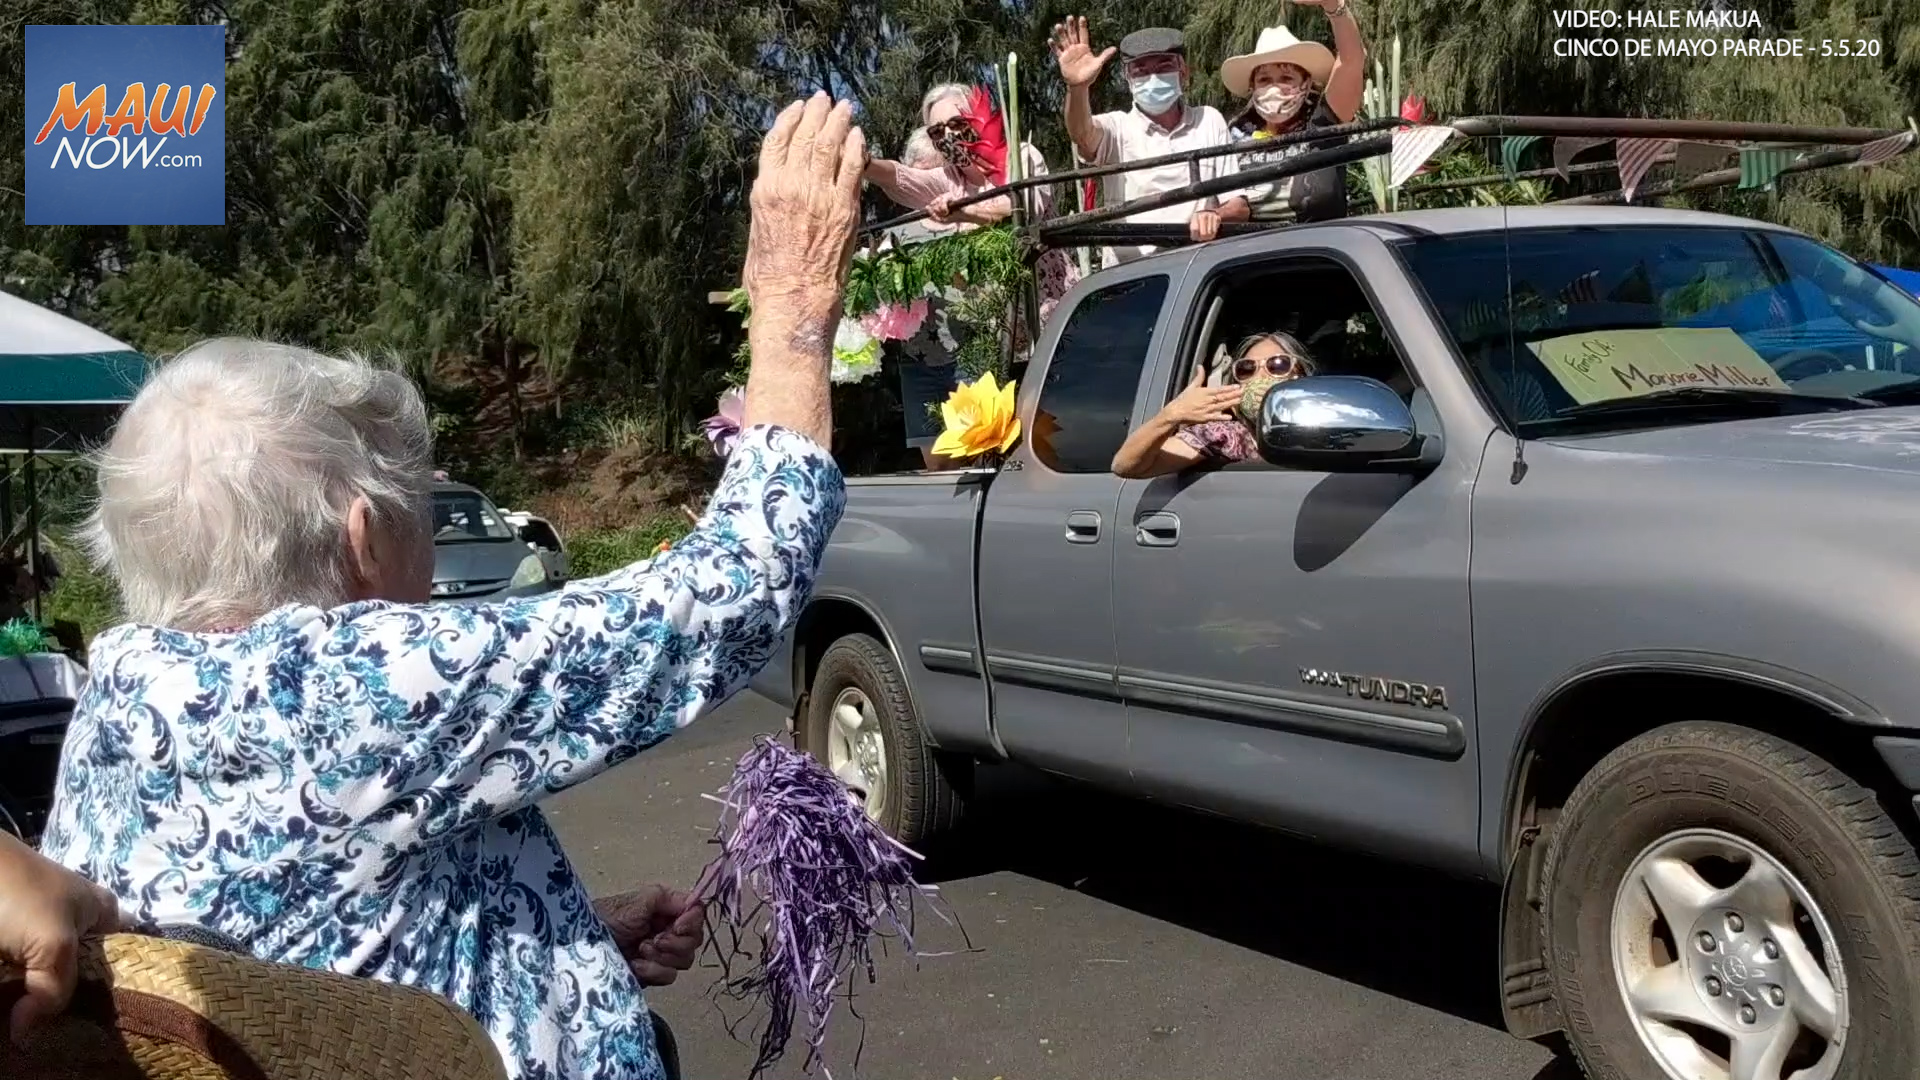 Cinco de Mayo Parade at Hale Makua Gives Residents a Chance to See Loved Ones